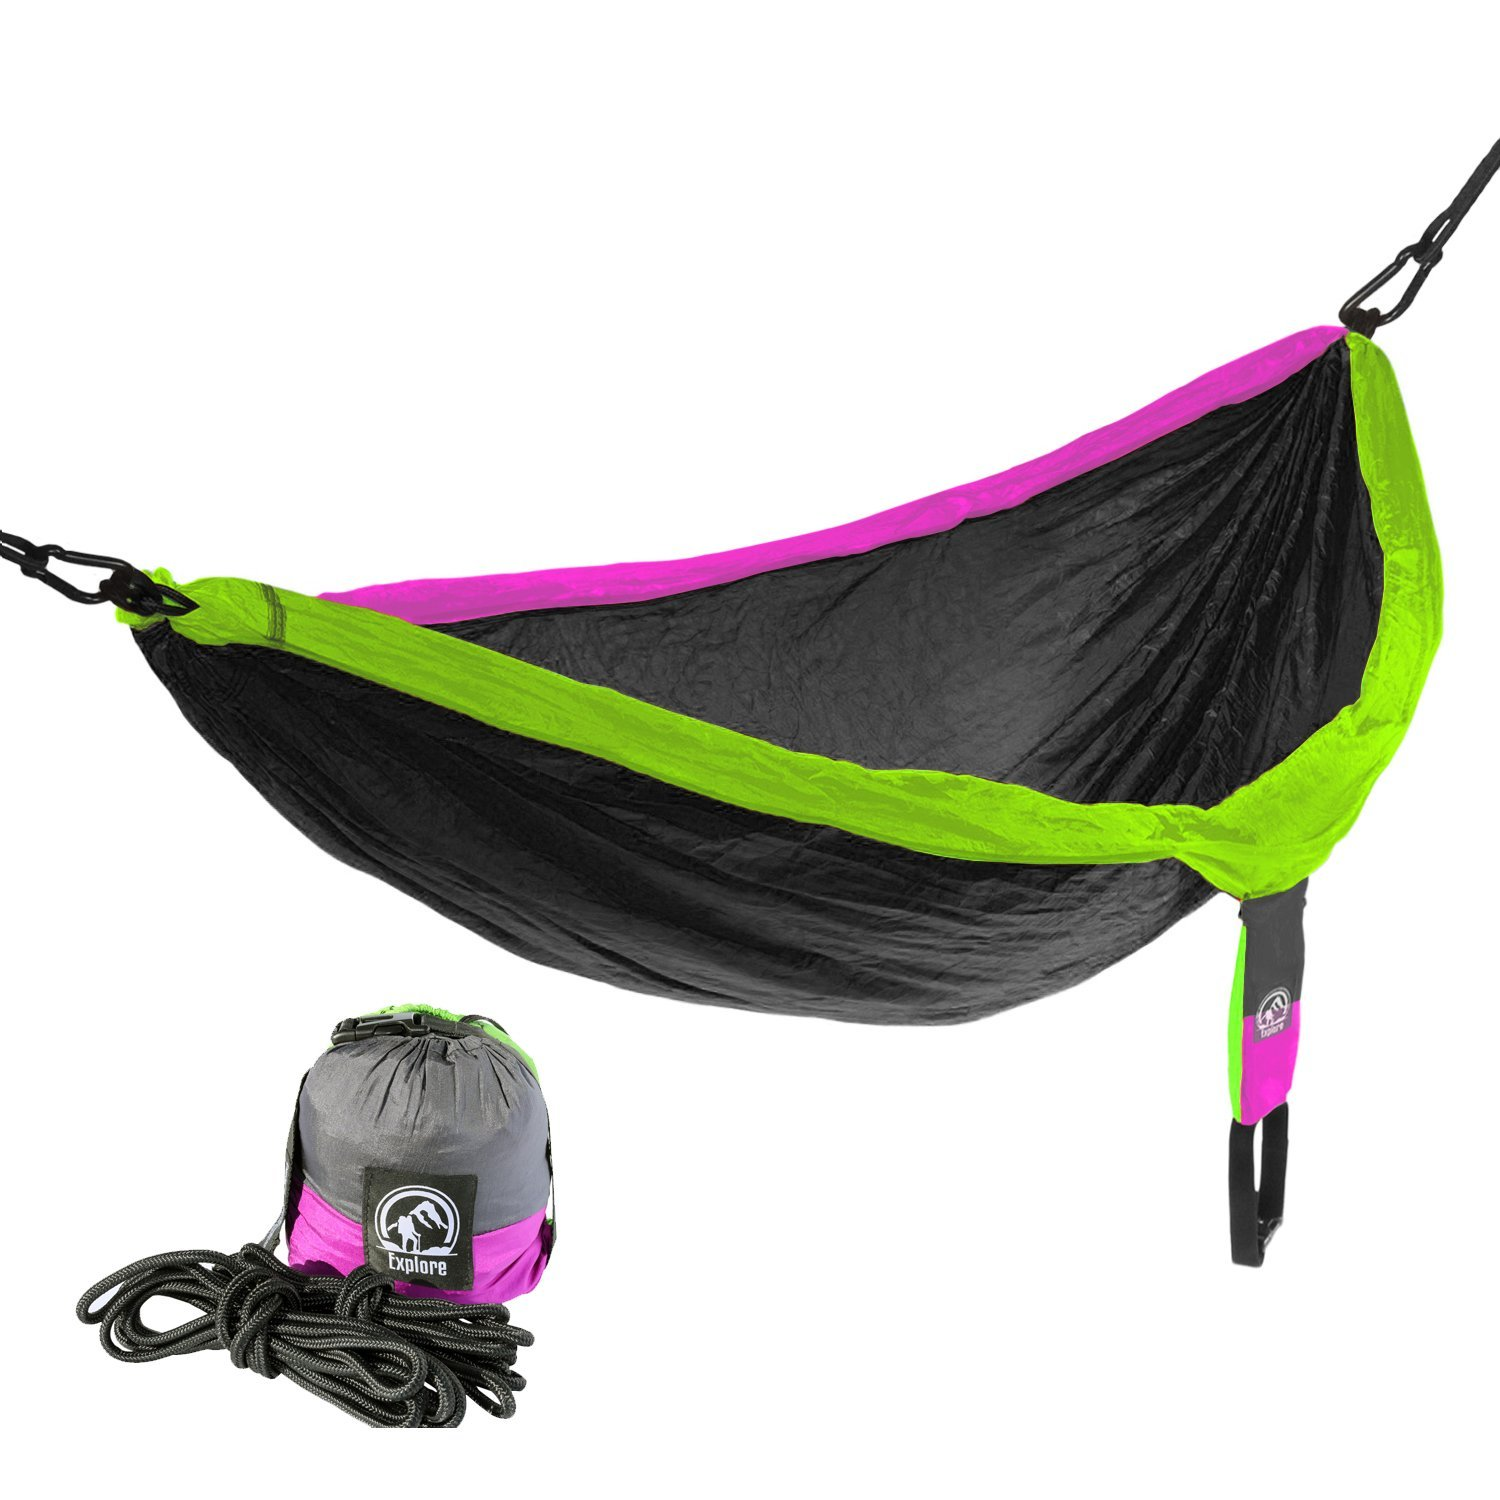 Explore Outfitters PRO Nylon Double Hammock